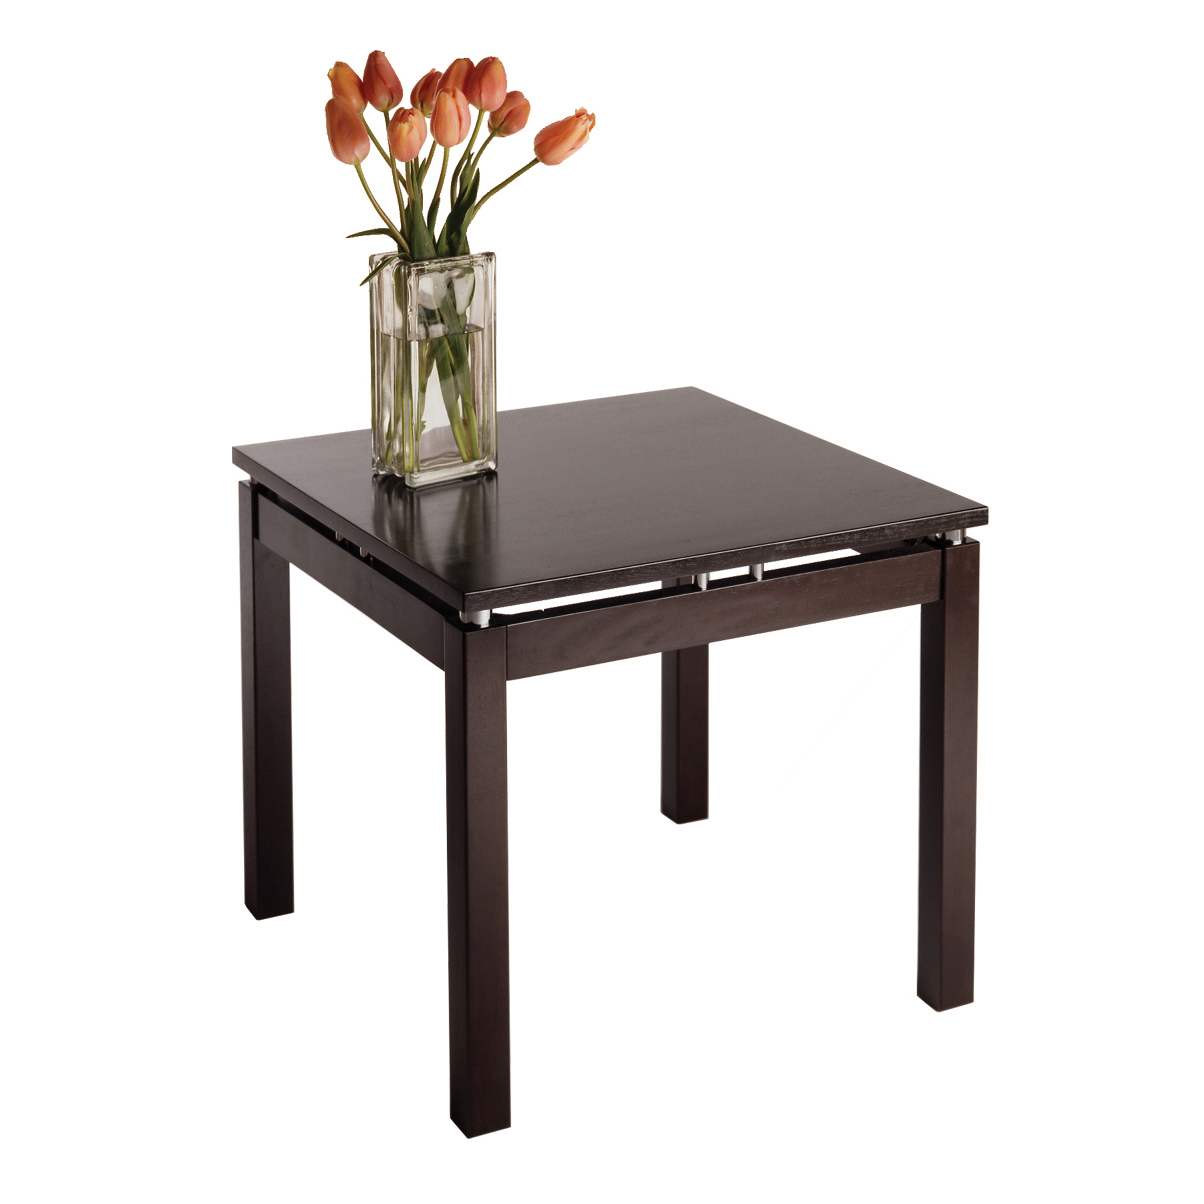 winsome wood linea occasional end table espresso finish beechwood accent tall living room tables green chair outdoor curtains ikea marble glass monarch coffee pottery barn black